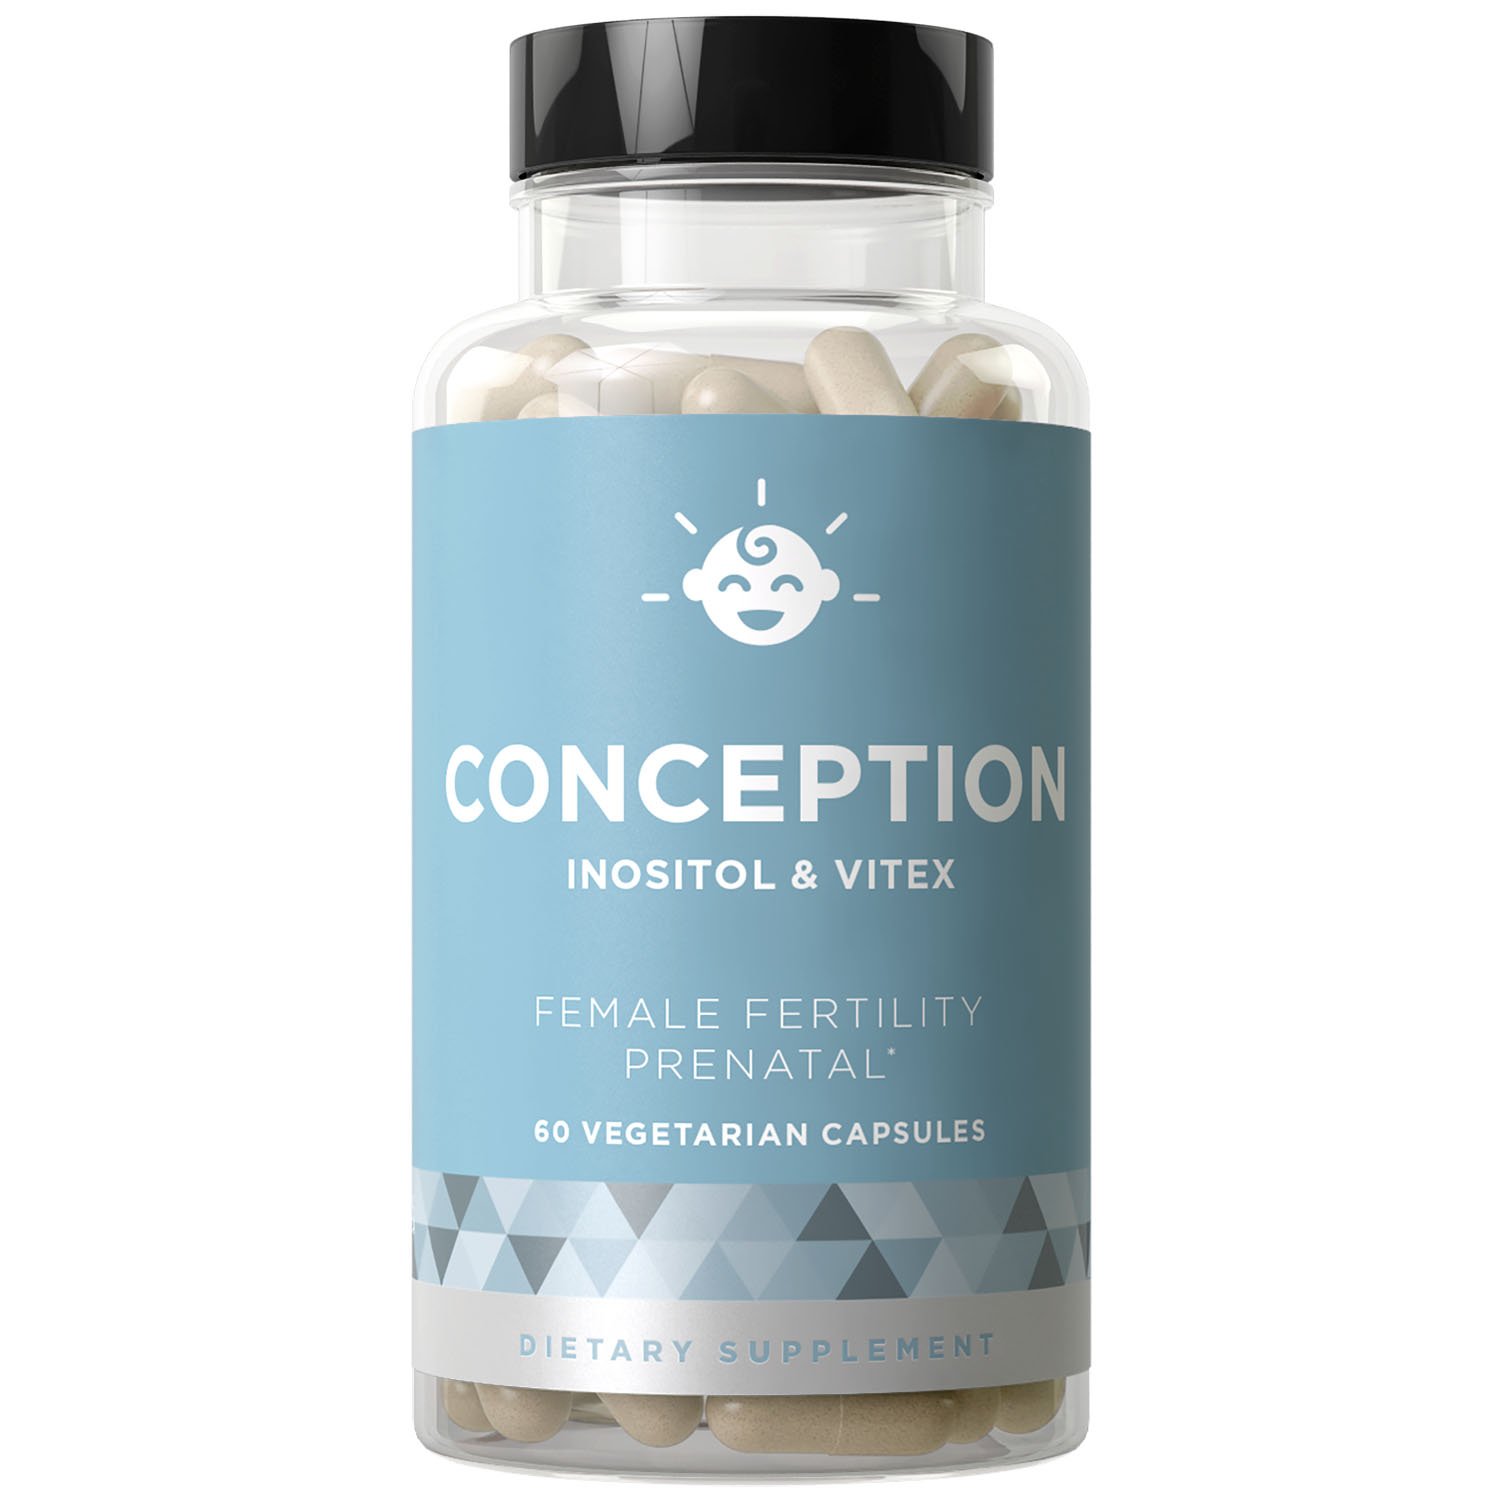 CONCEPTION Fertility Prenatal Vitamins - Regulate Your Cycle, Balance Hormones, Aid Ovulation - Myo-Inositol, Vitex, Folate Folic Acid - 60 Vegetarian Soft Capsules